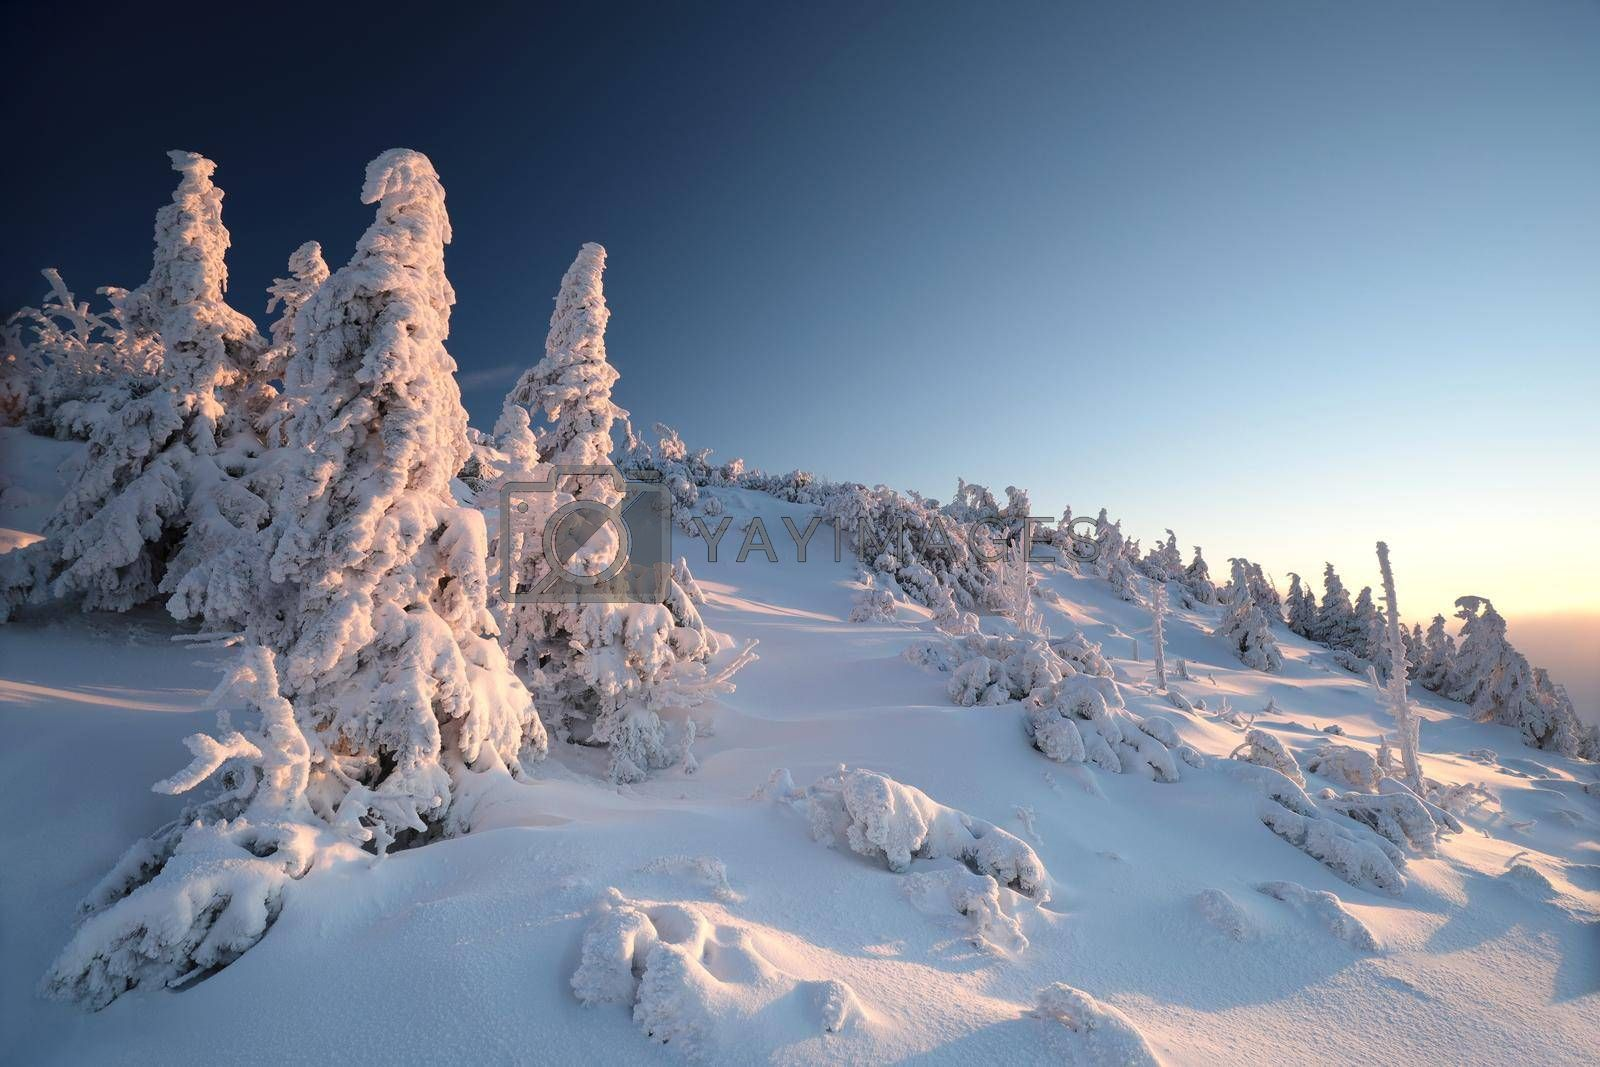 Spruce trees covered with snow on the mountain top against the blue sky at dusk